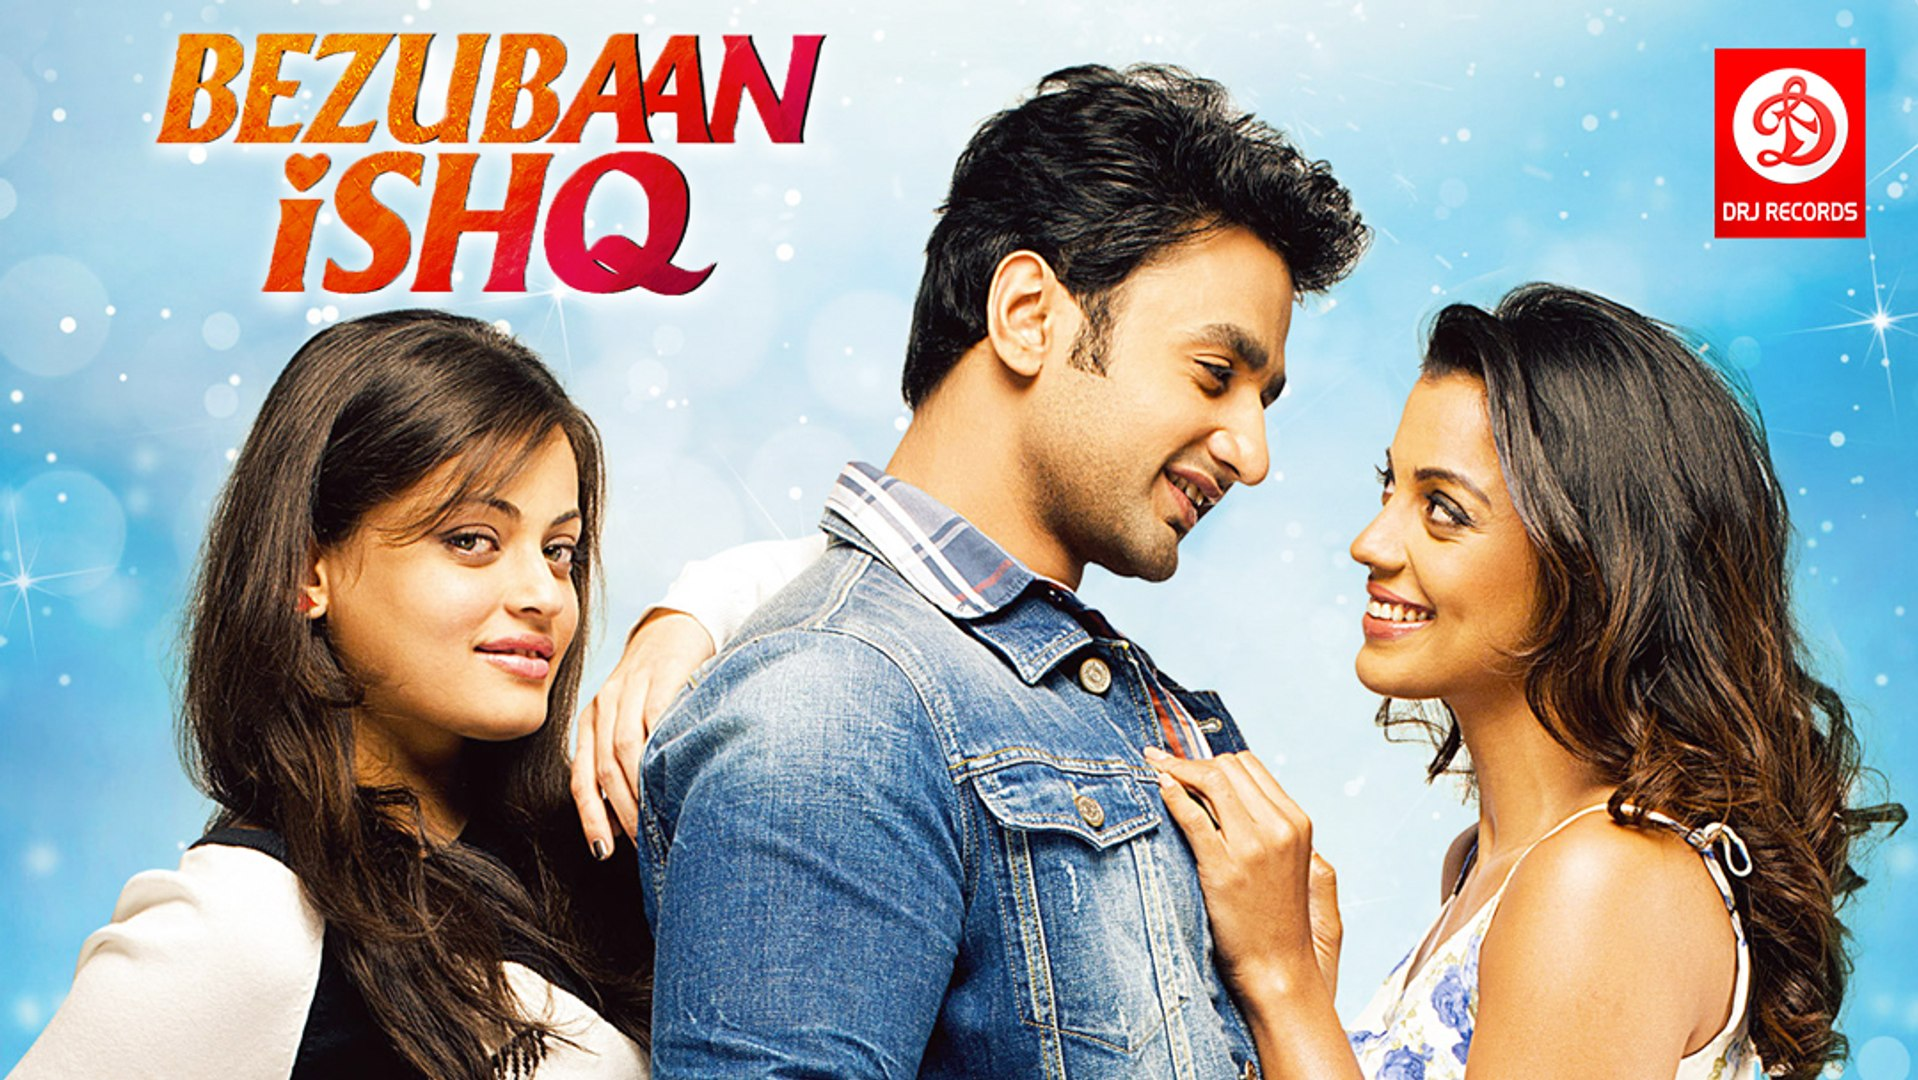 Bezubaan Ishq | Bollywood Romantics & Love  movie | Mugdha Godse, Sneha Ullal, Nishant | Bollywo